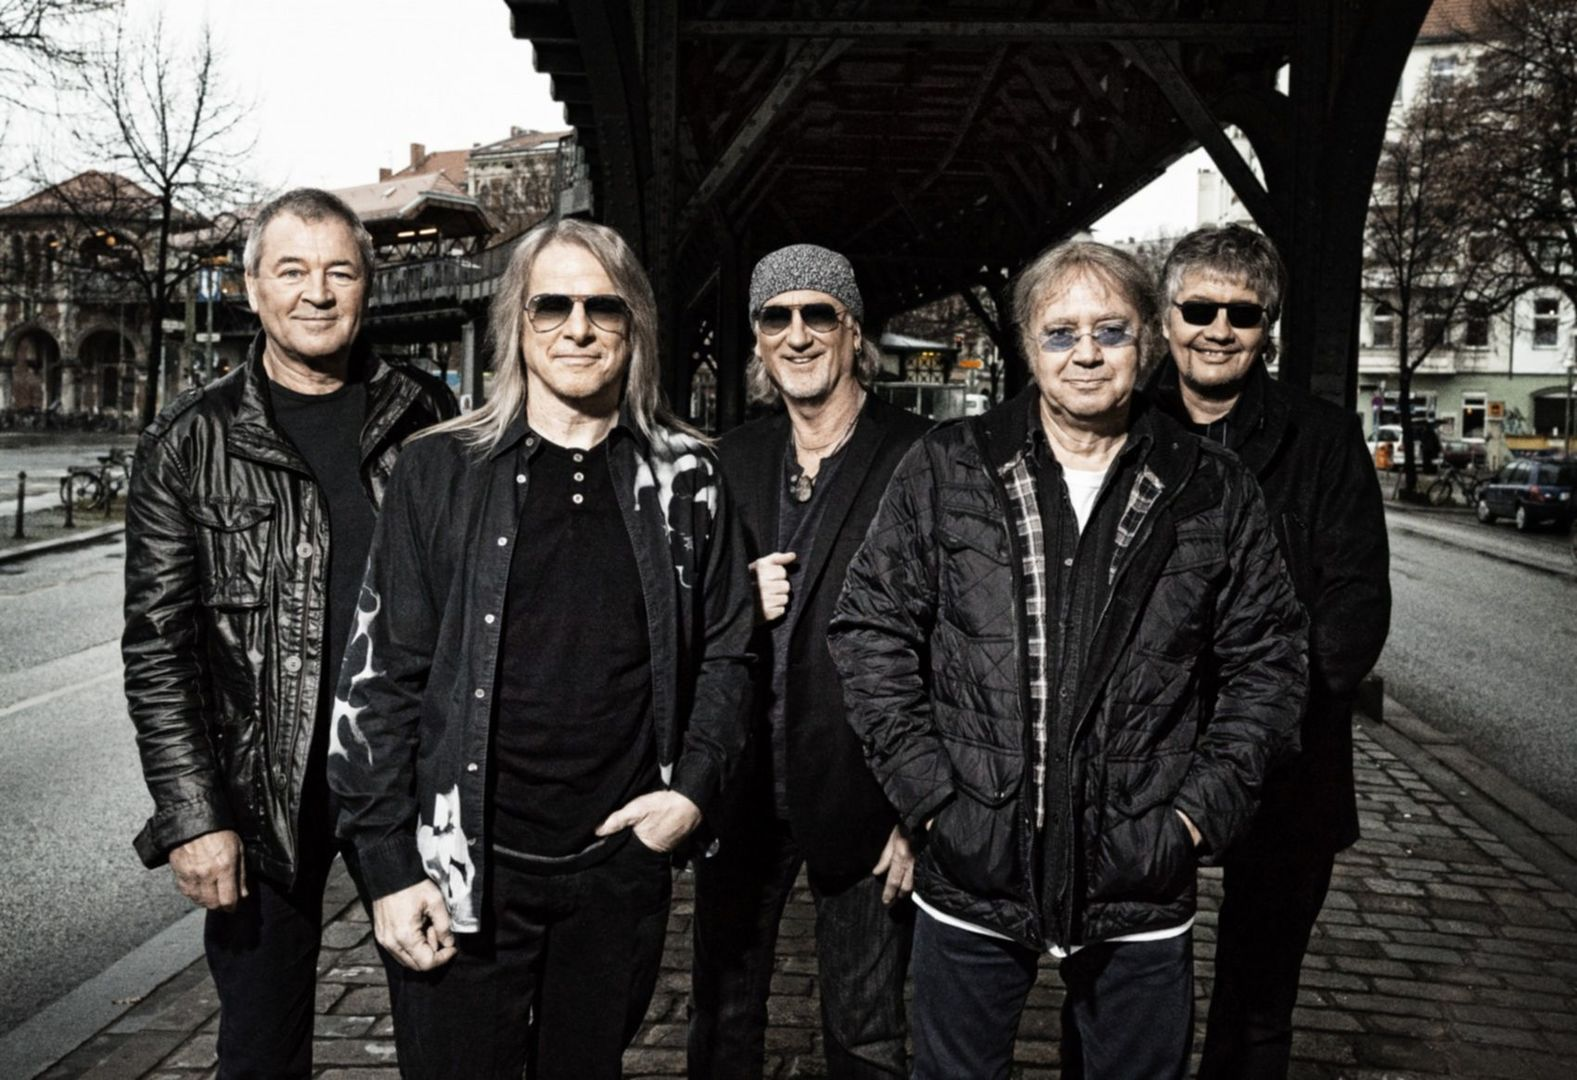 DeepPurple_band_7 photocredit Jim Rakete